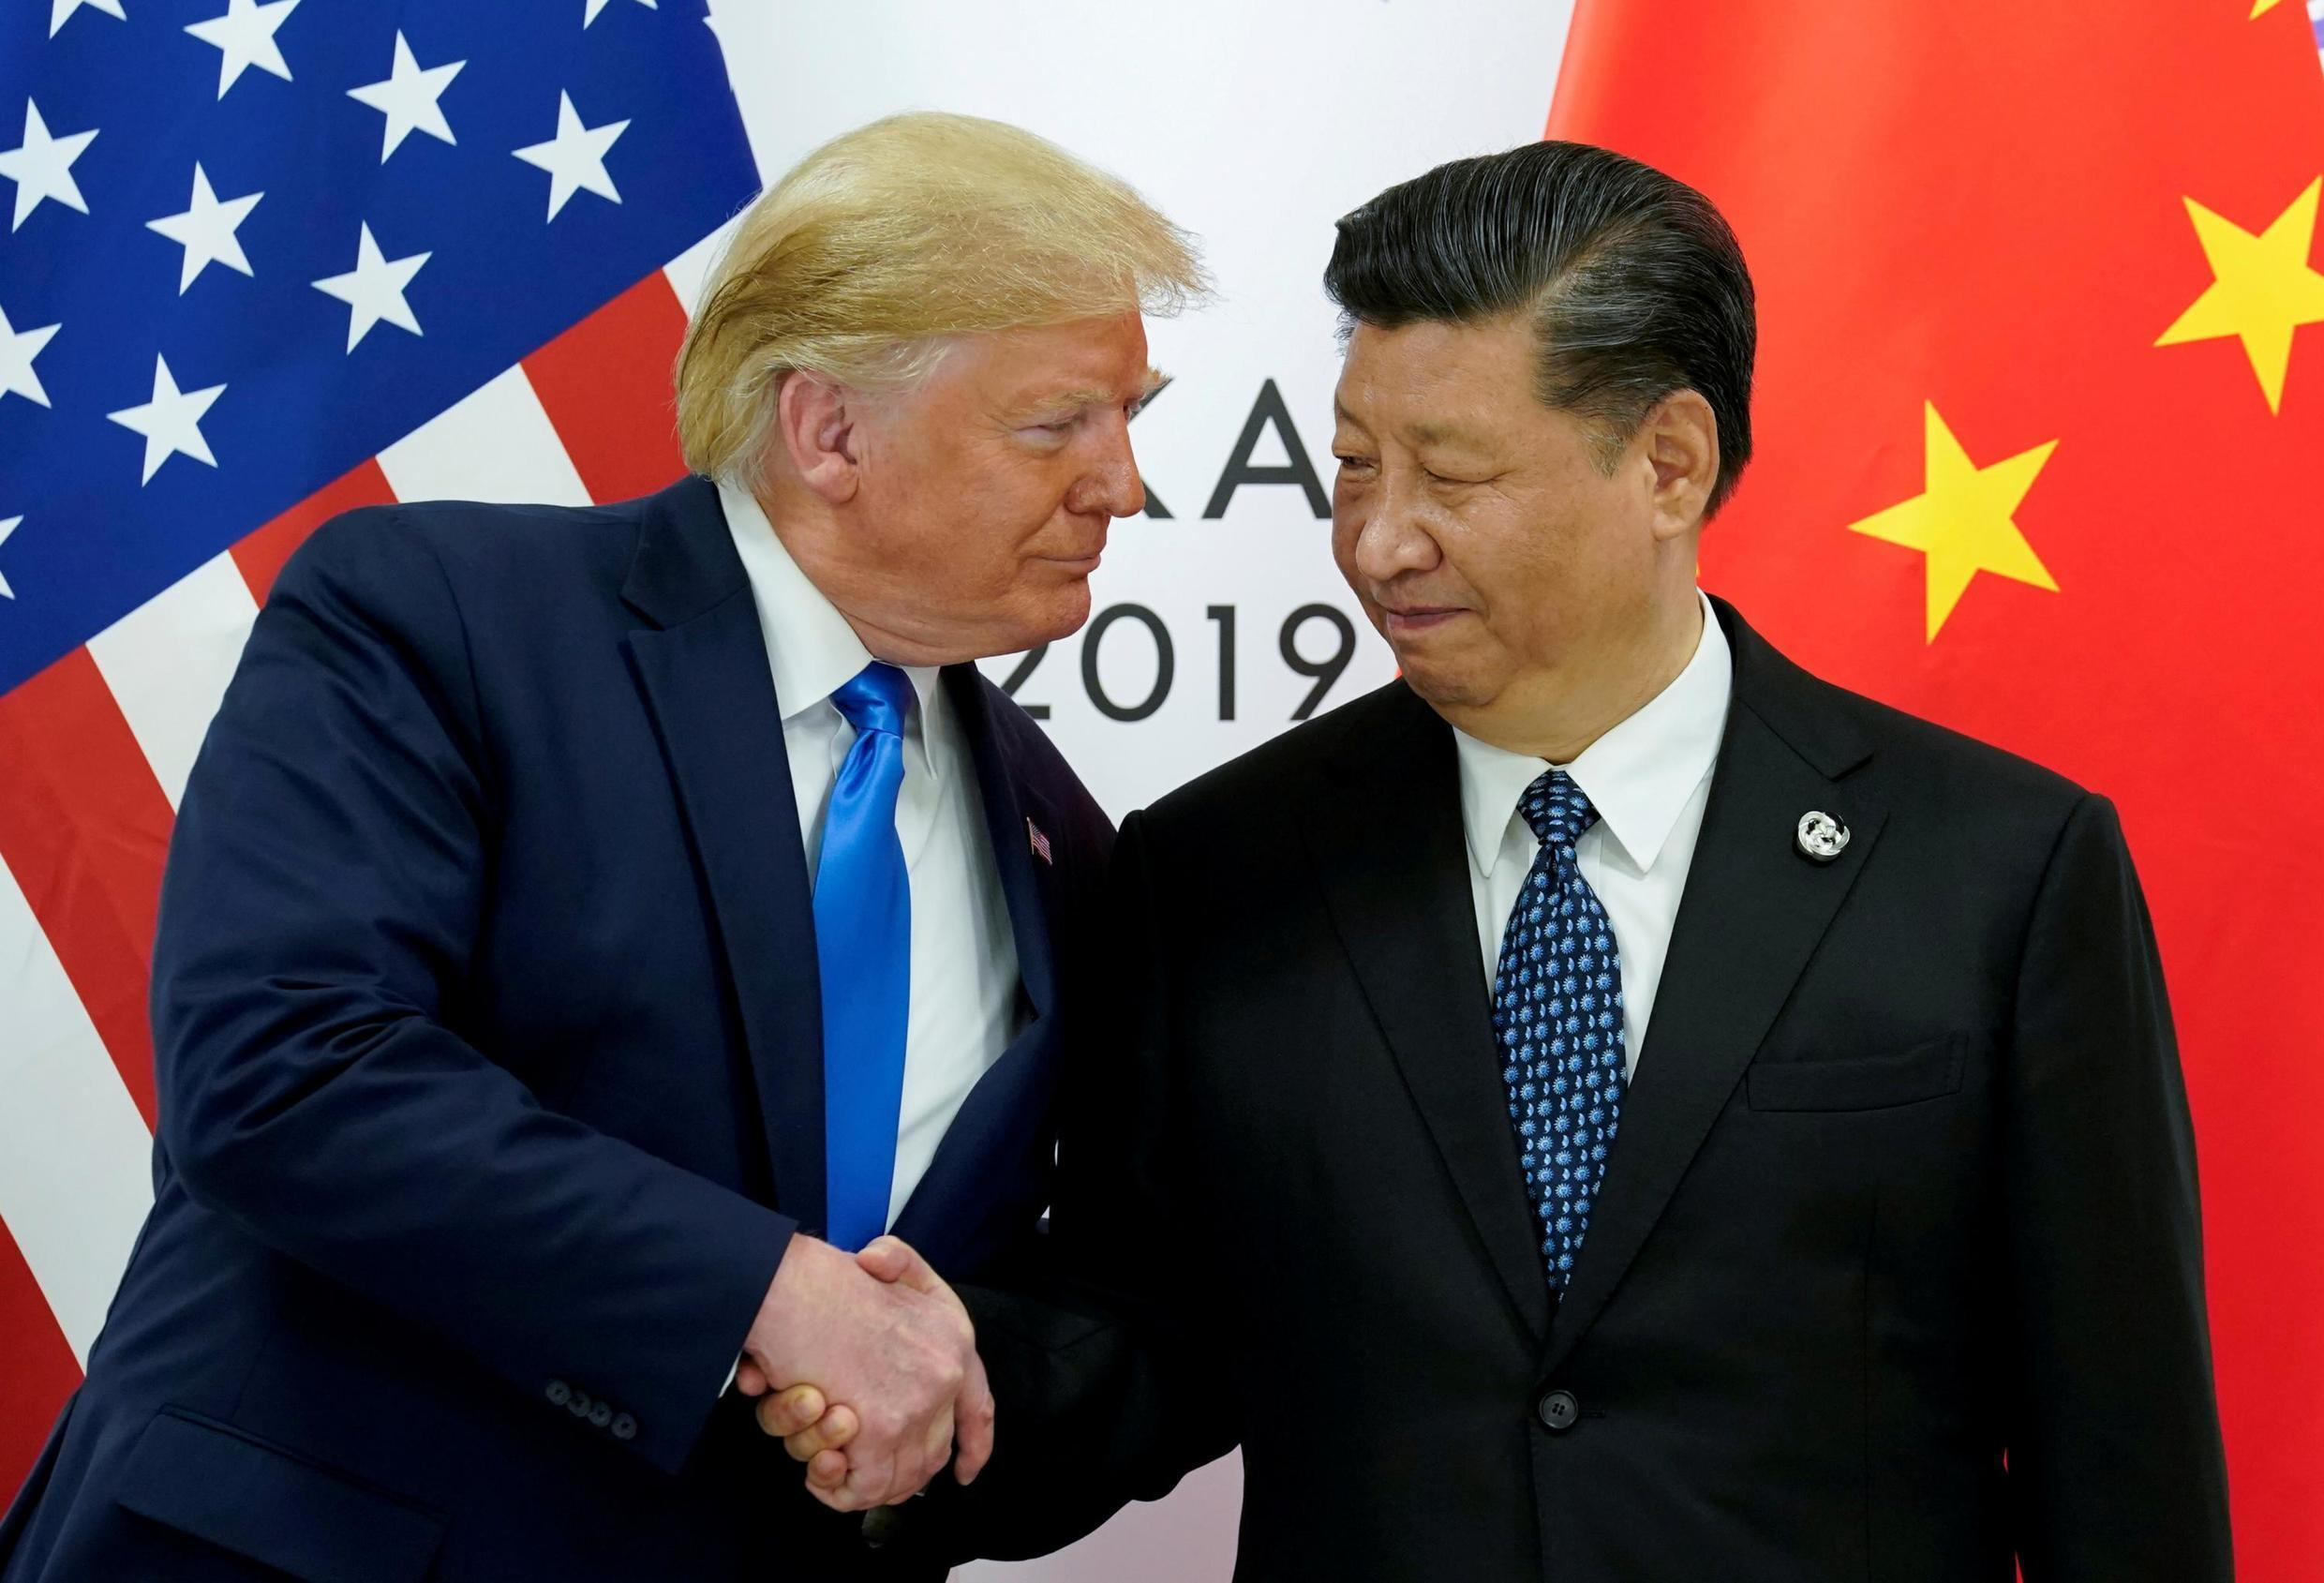 US President Donald Trump and his Chinese counterpart Xi Jinping at the start of their bilateral meeting at the G20 summit in Osaka, Japan, earlier this year.